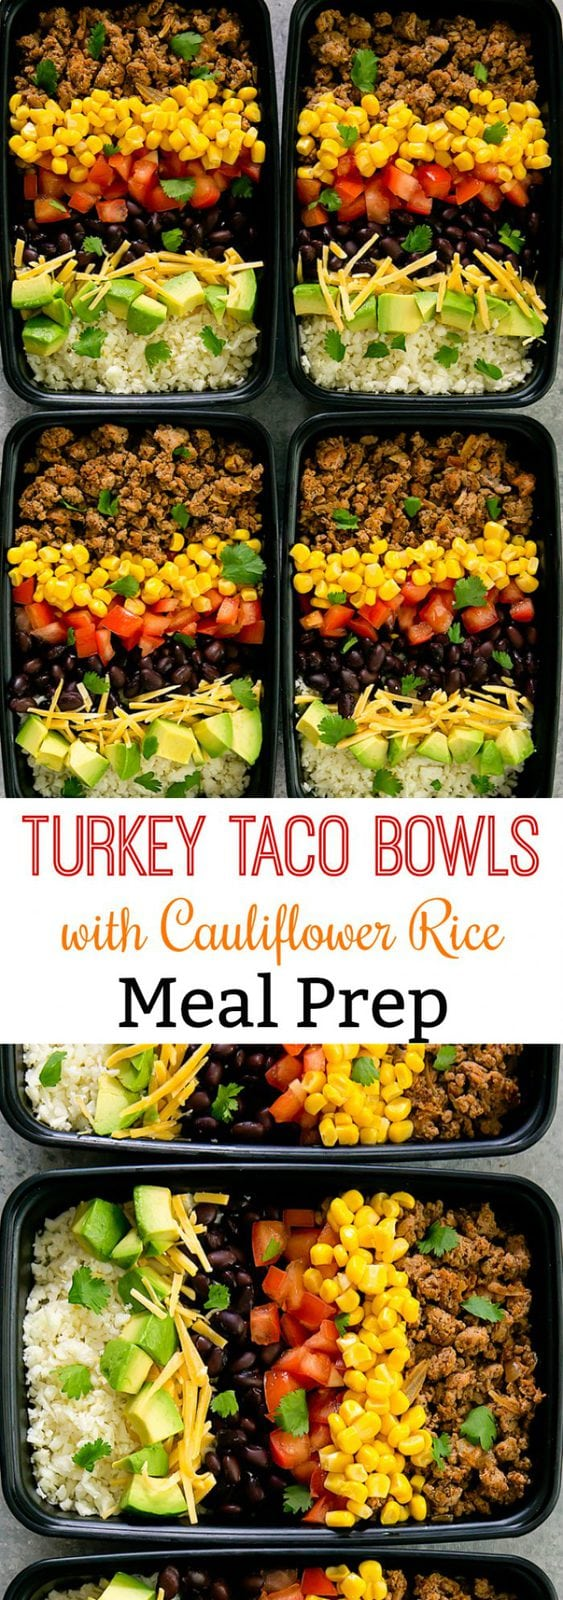 Skinny Turkey Taco Bowls with Cauliflower Rice Meal Prep